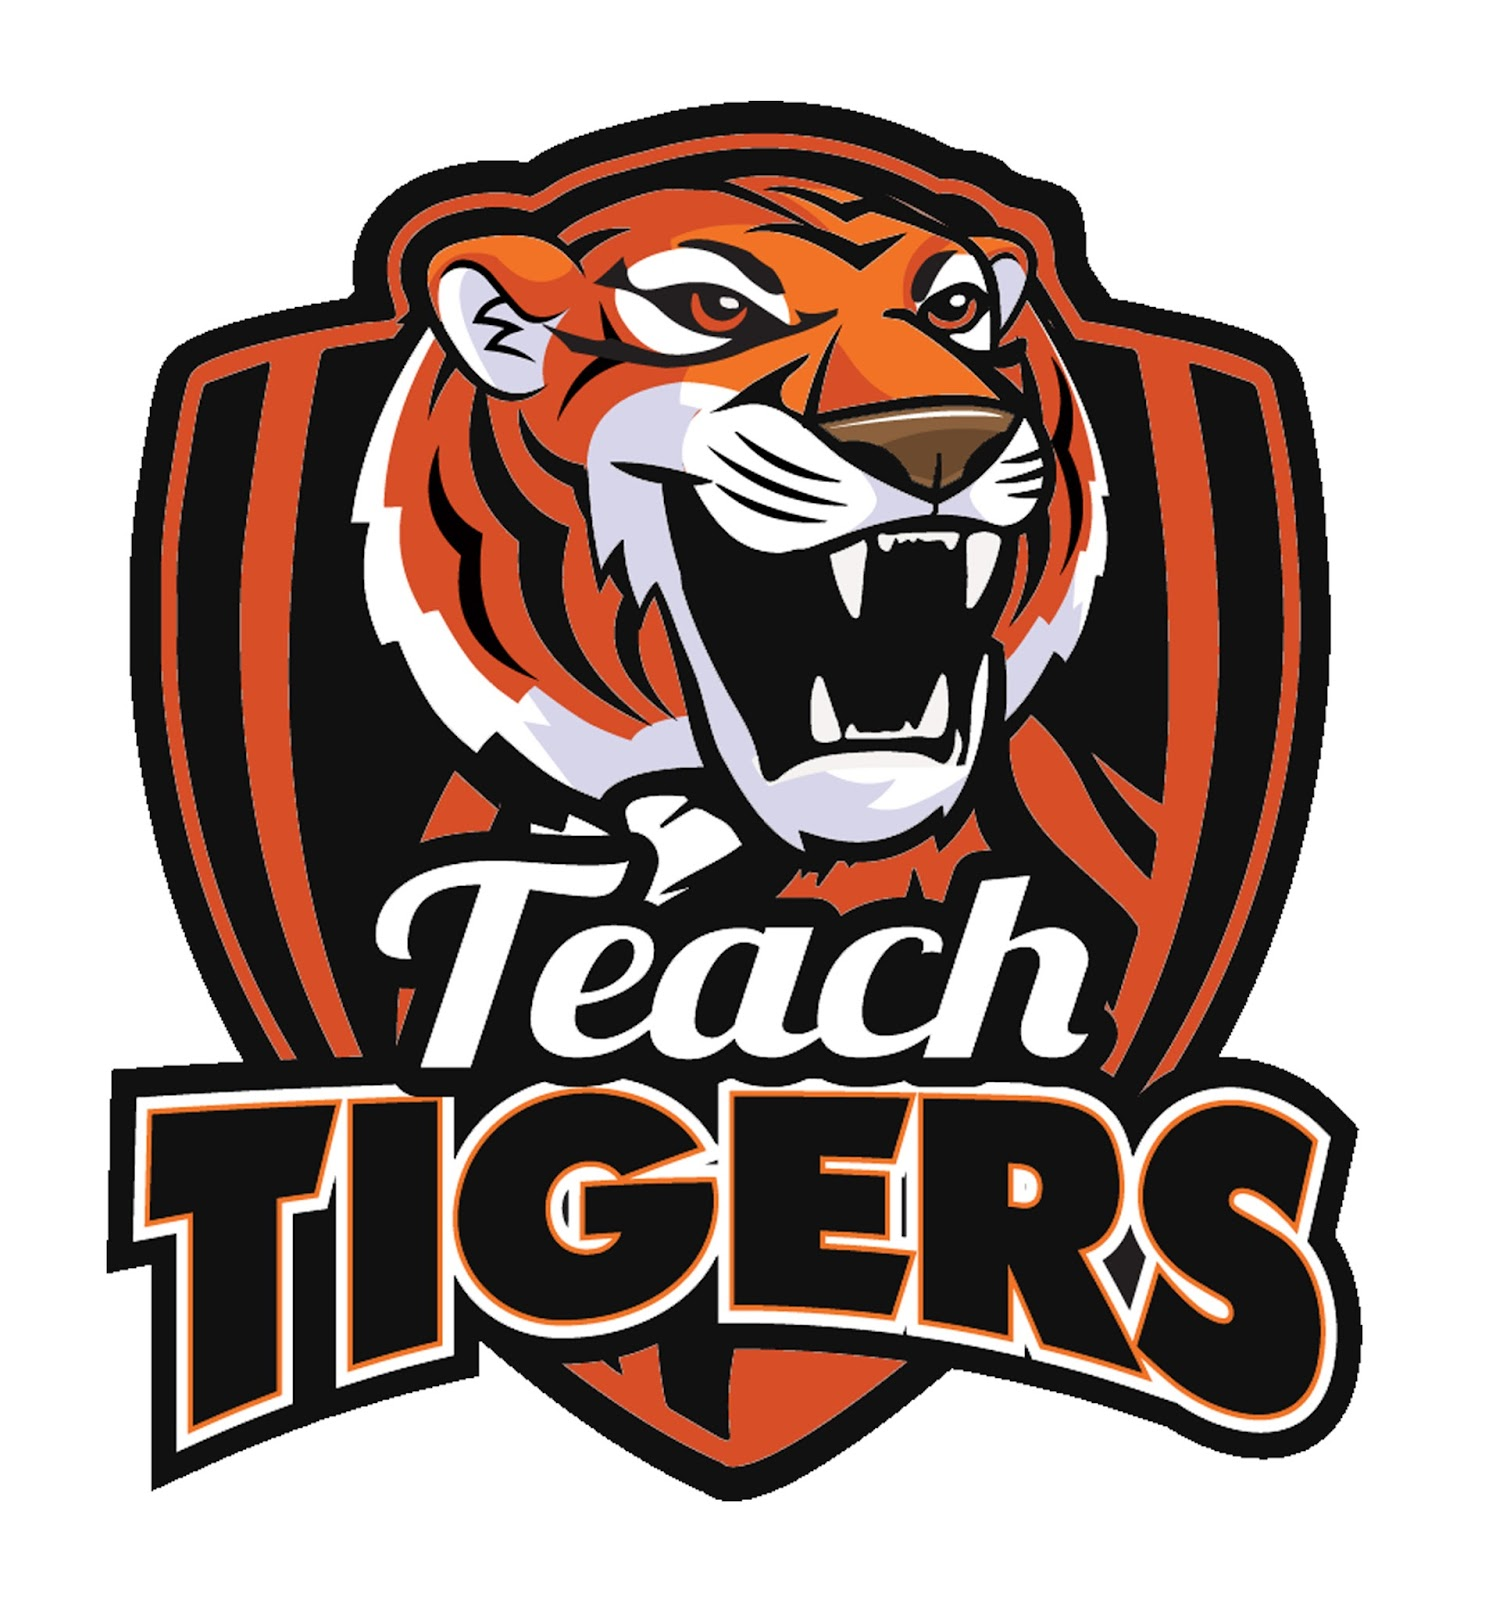 Teach Tiger logo 2017 color.JPG